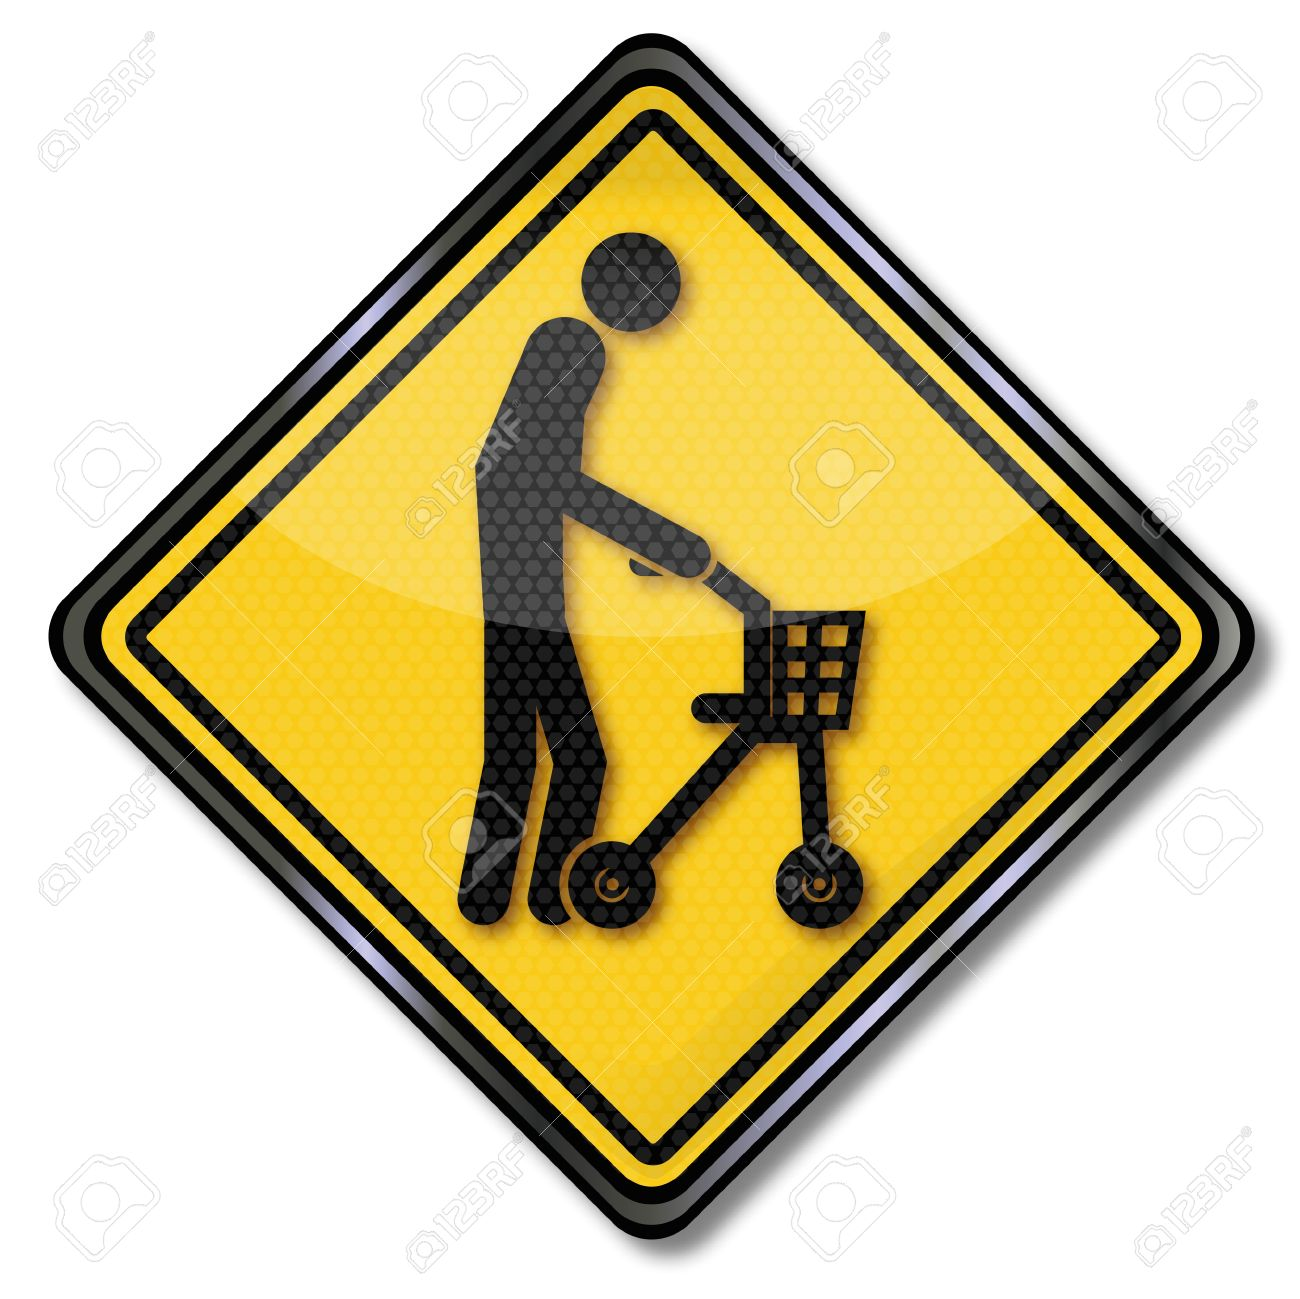 Sign Old Man With Walker Royalty Free Cliparts, Vectors, And Stock.